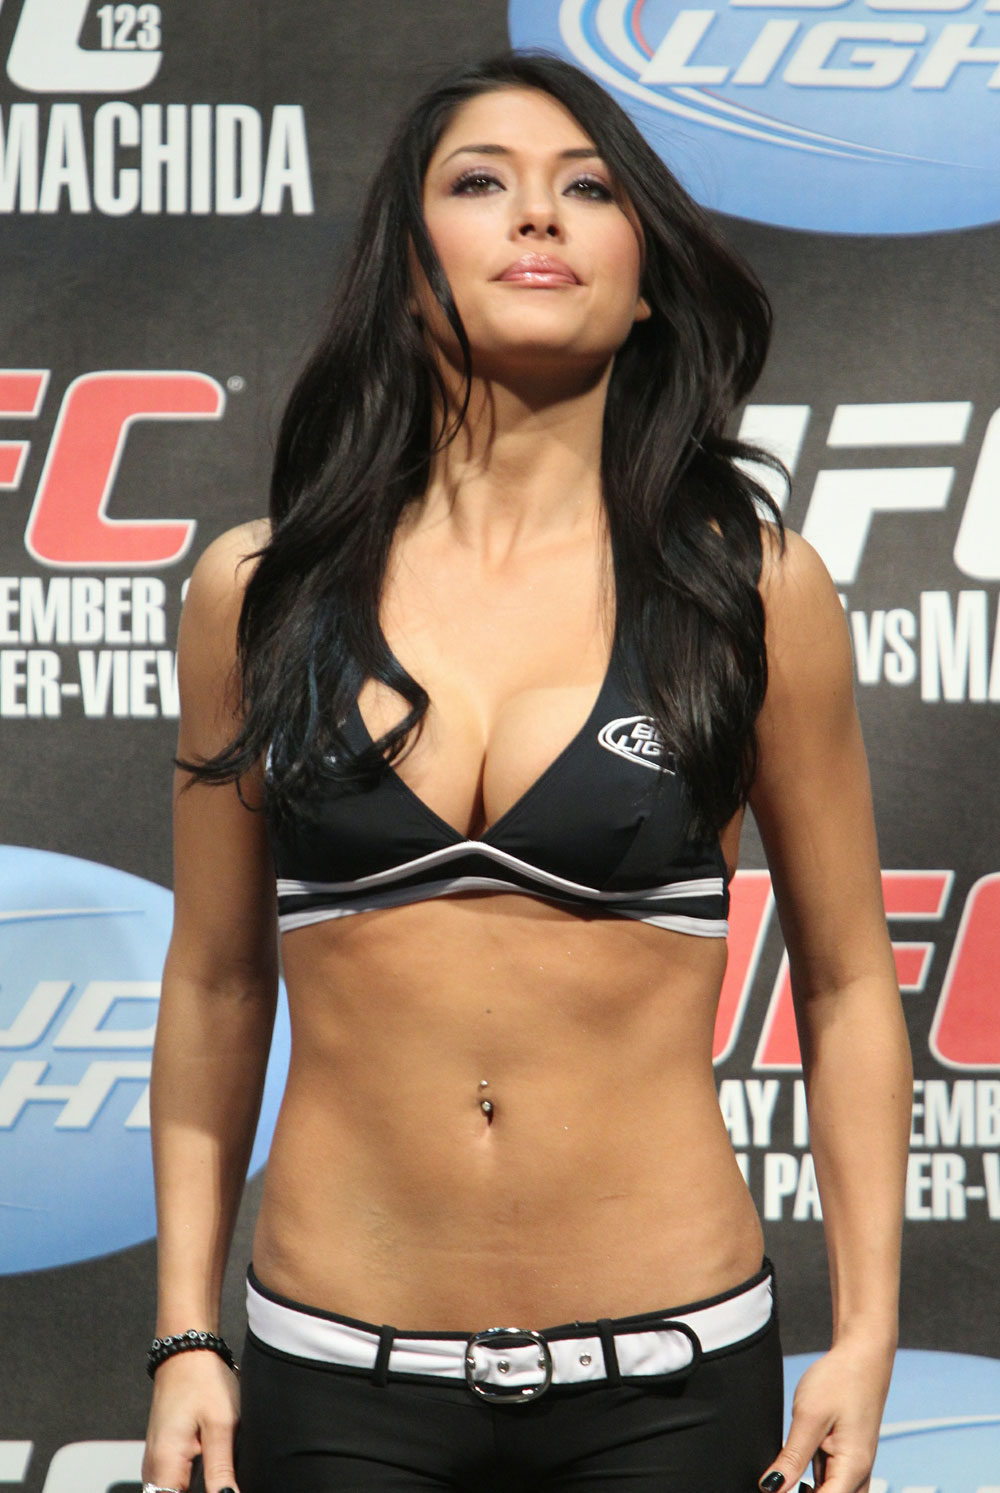 Mma ring girls naked